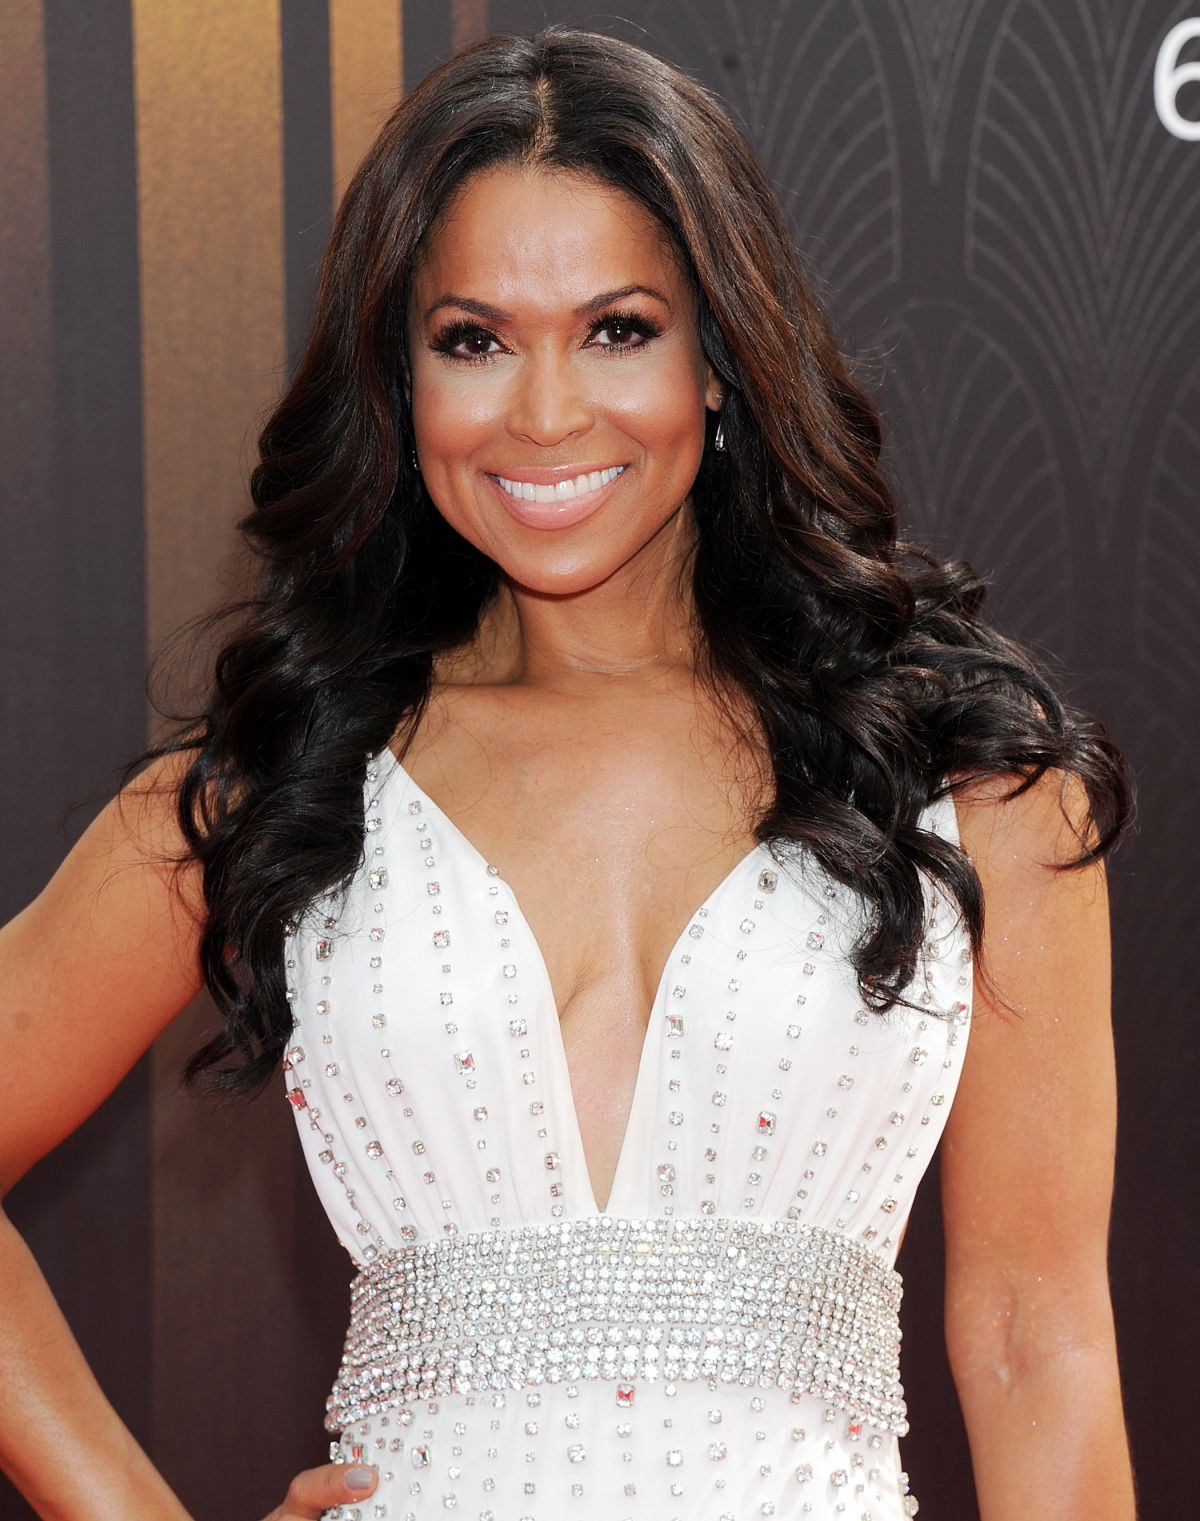 TRACEY EDMONDS at 2015 Emmy Awards in Los Angeles 09/20/2015